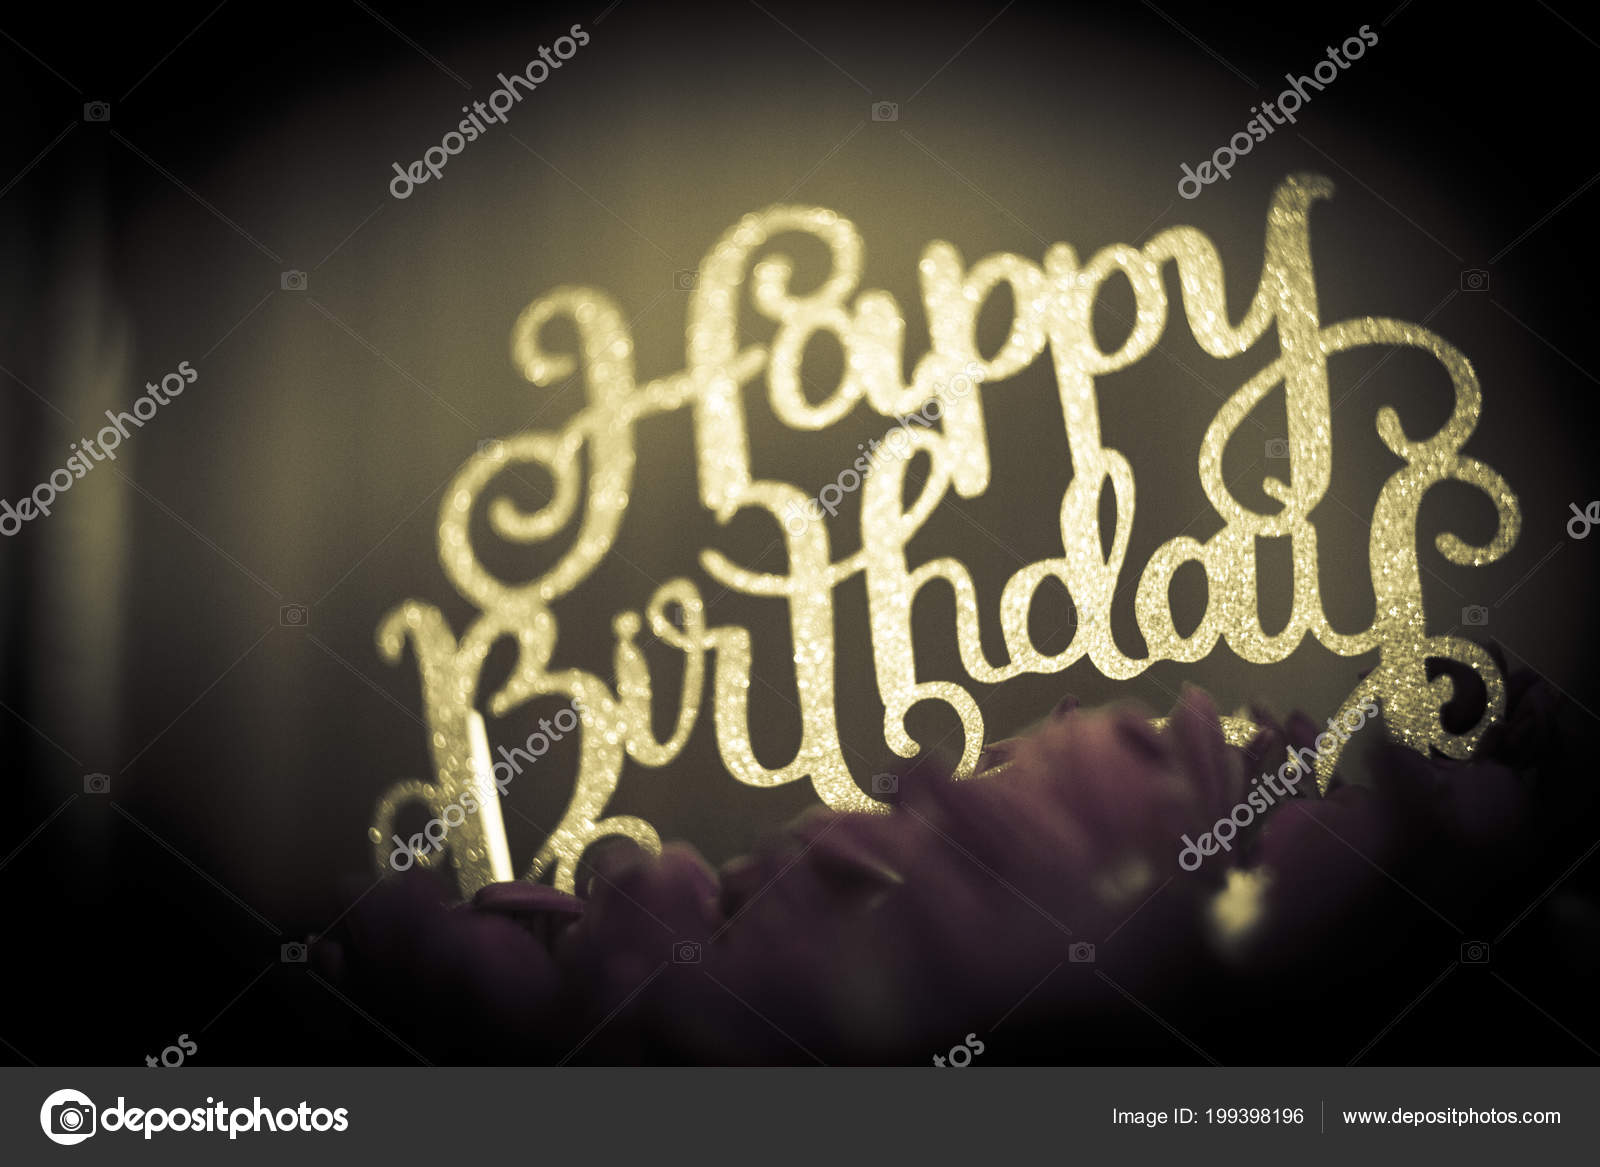 images flower birthday quotes flower arrangement happy